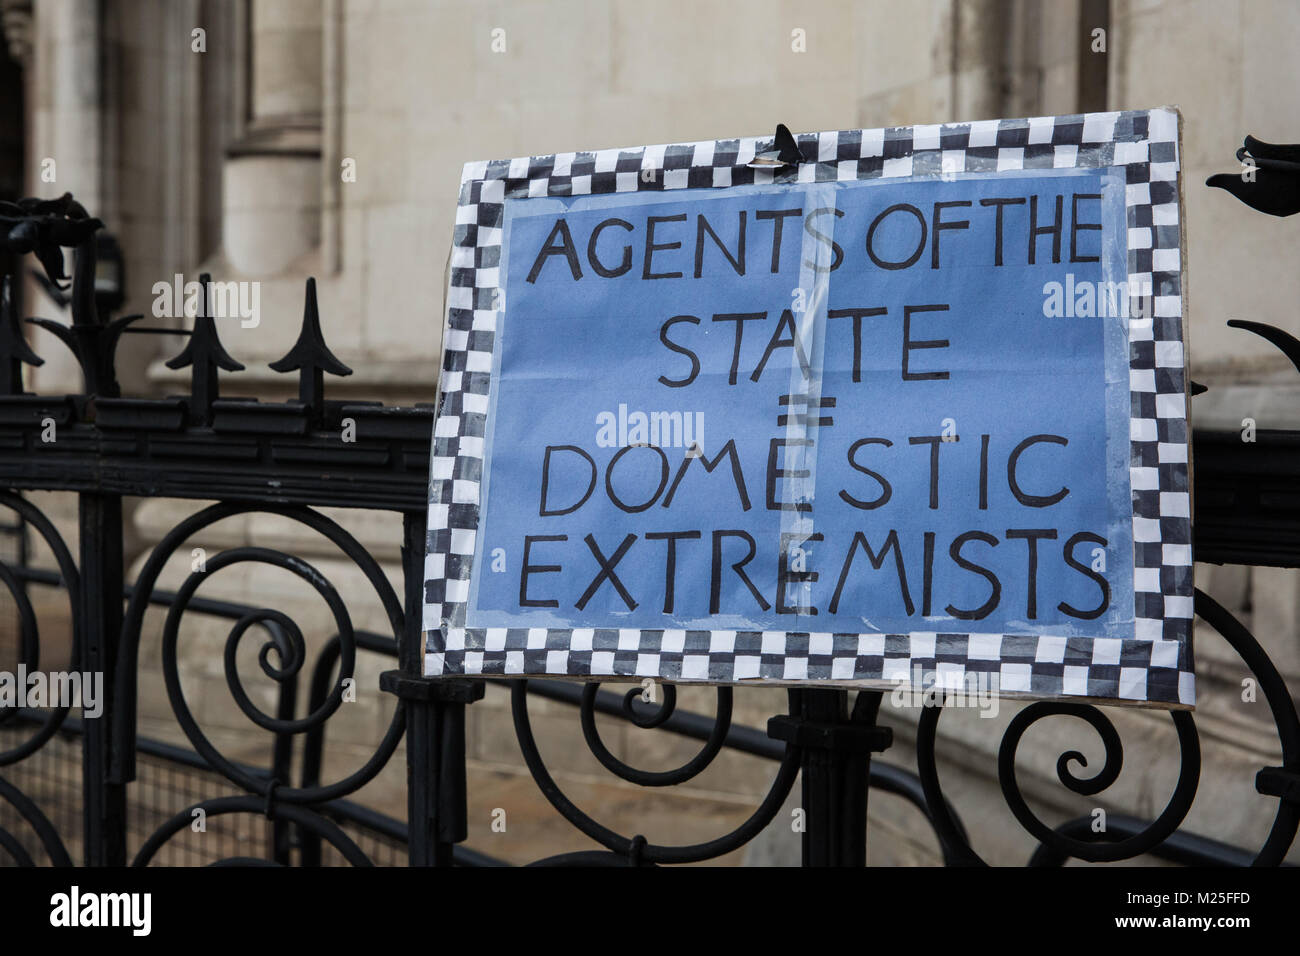 London, UK. 5th February, 2018. A sign outside the Royal Courts of Justice on the 5th annual Domestic Extremist - Stock Image